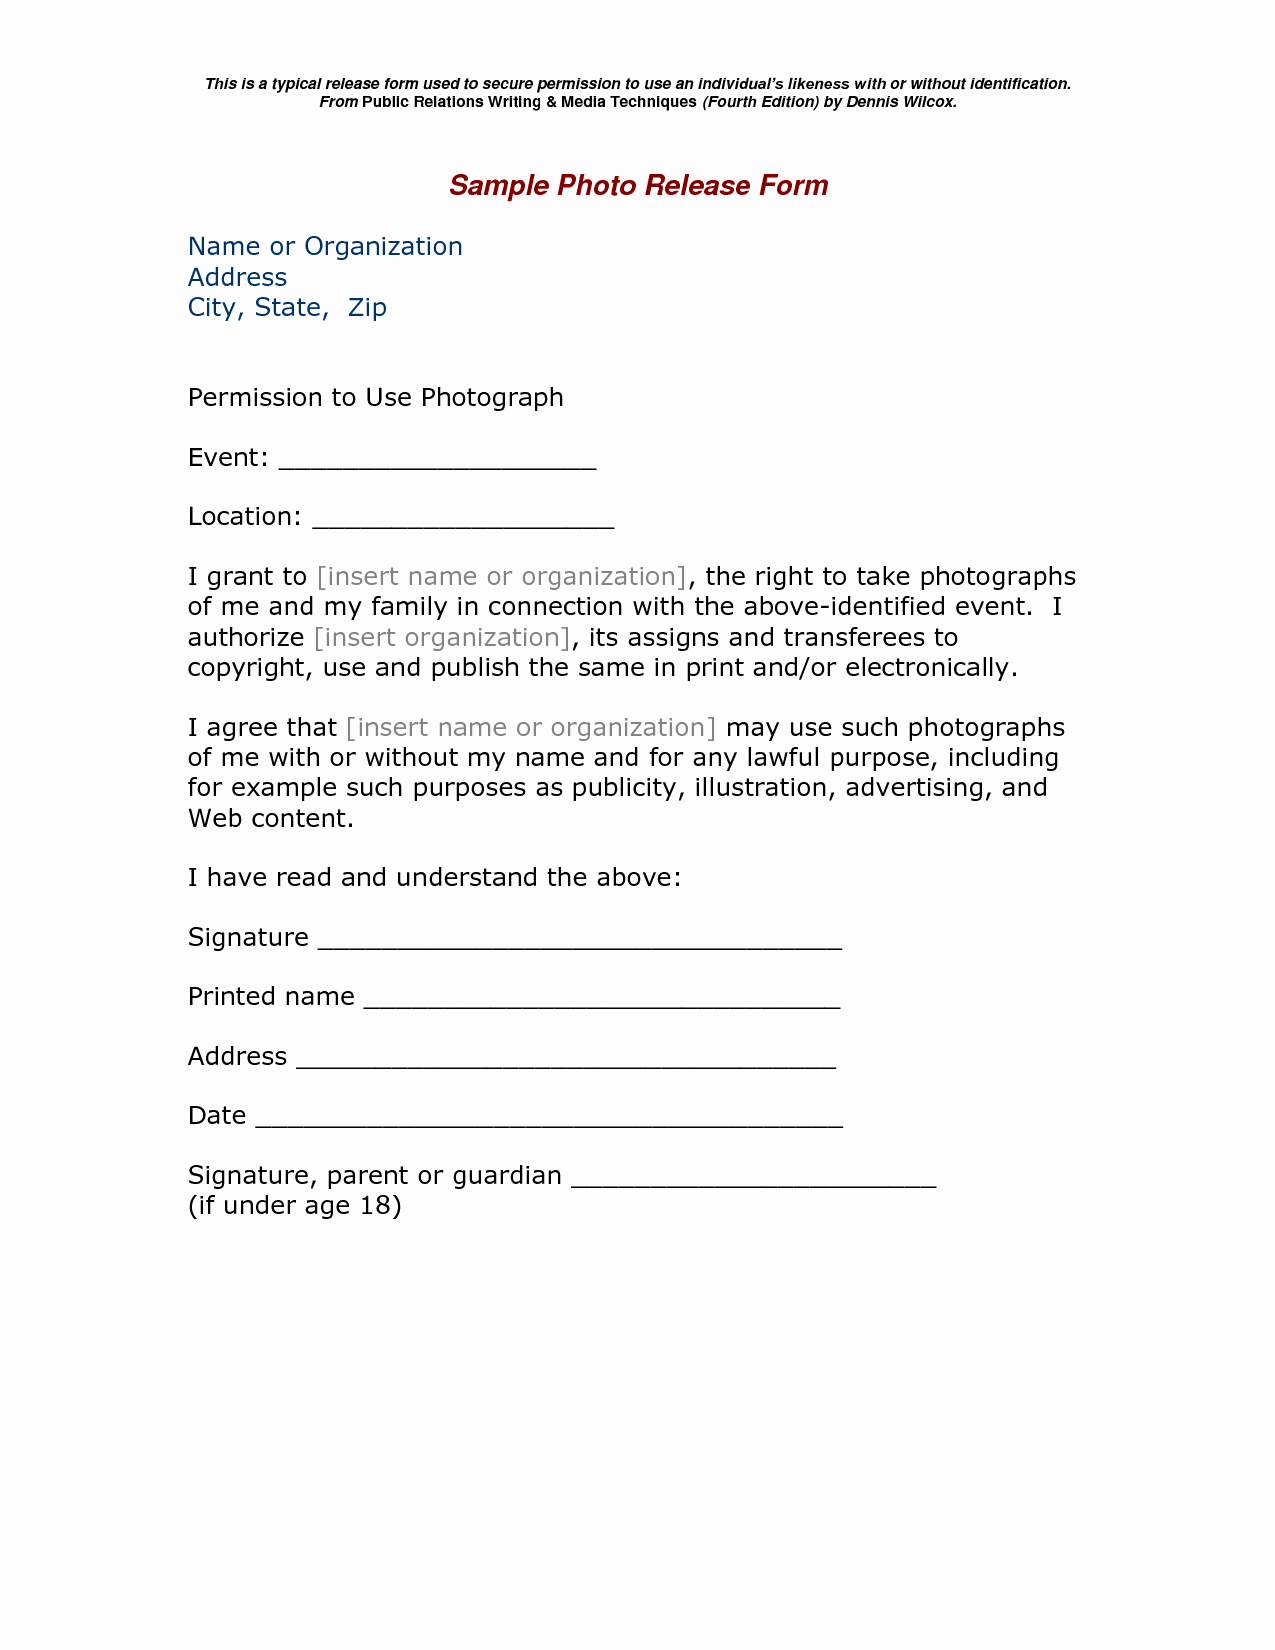 Photo Print Release form Template Beautiful Photography Print Release form Google Search